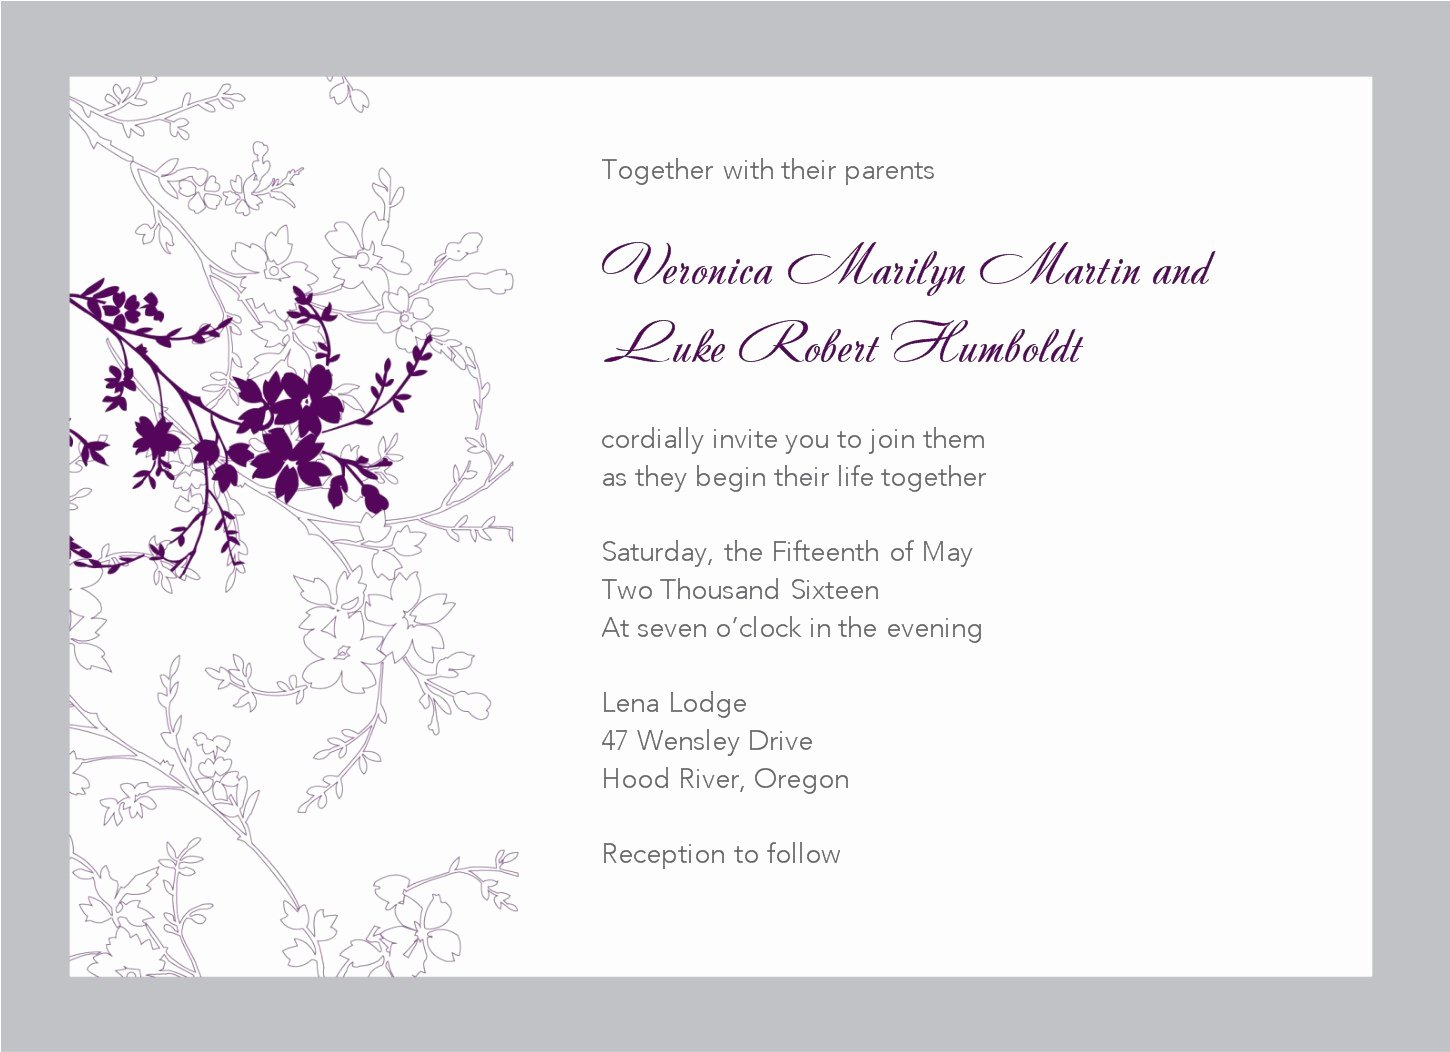 Microsoft Word Invitation Template New Free Wedding Invitation Templates for Word